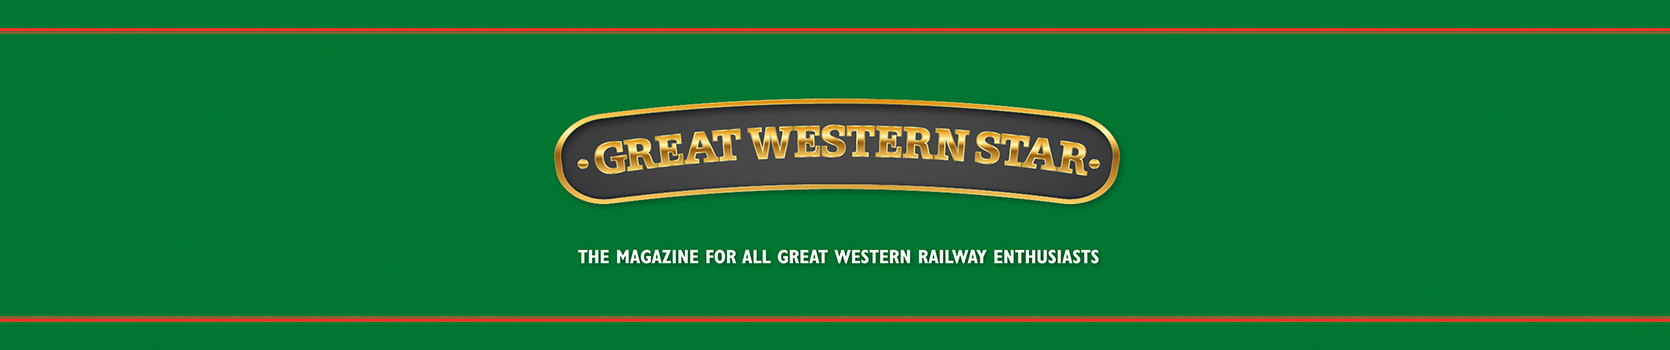 The GWR Star Shop